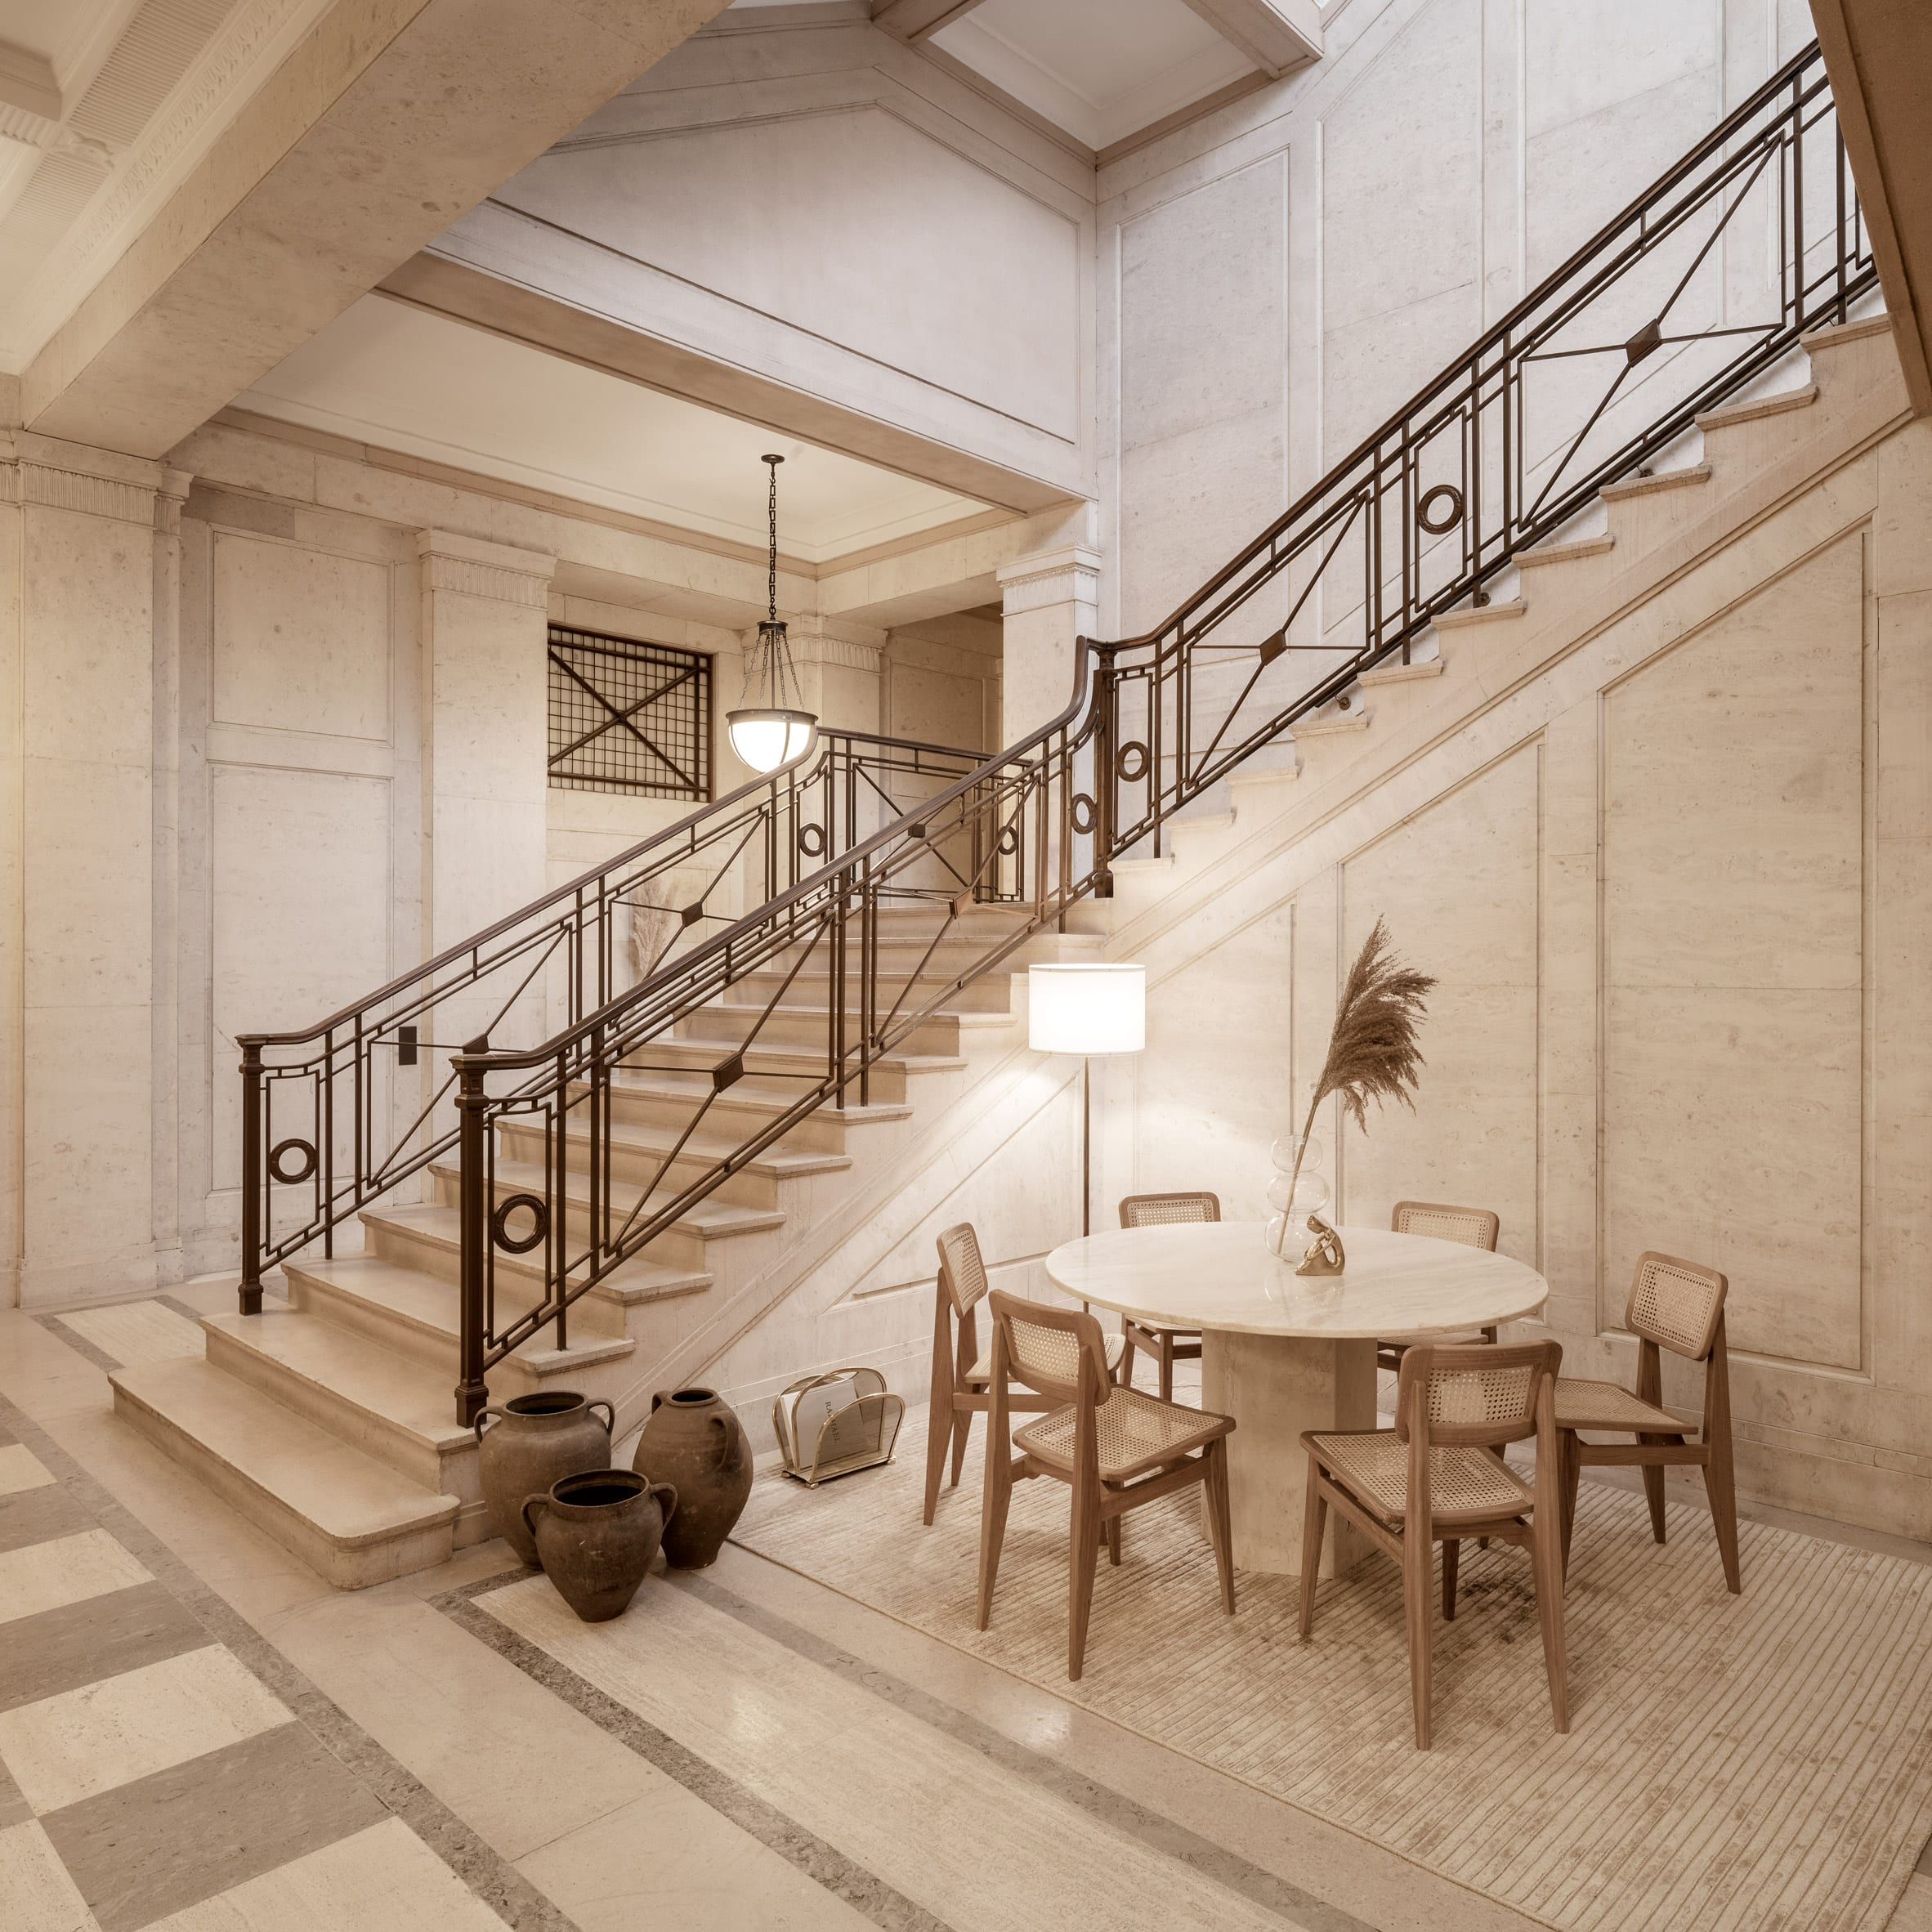 Staircase of Victoria House with seating area of wooden chairs and marble table